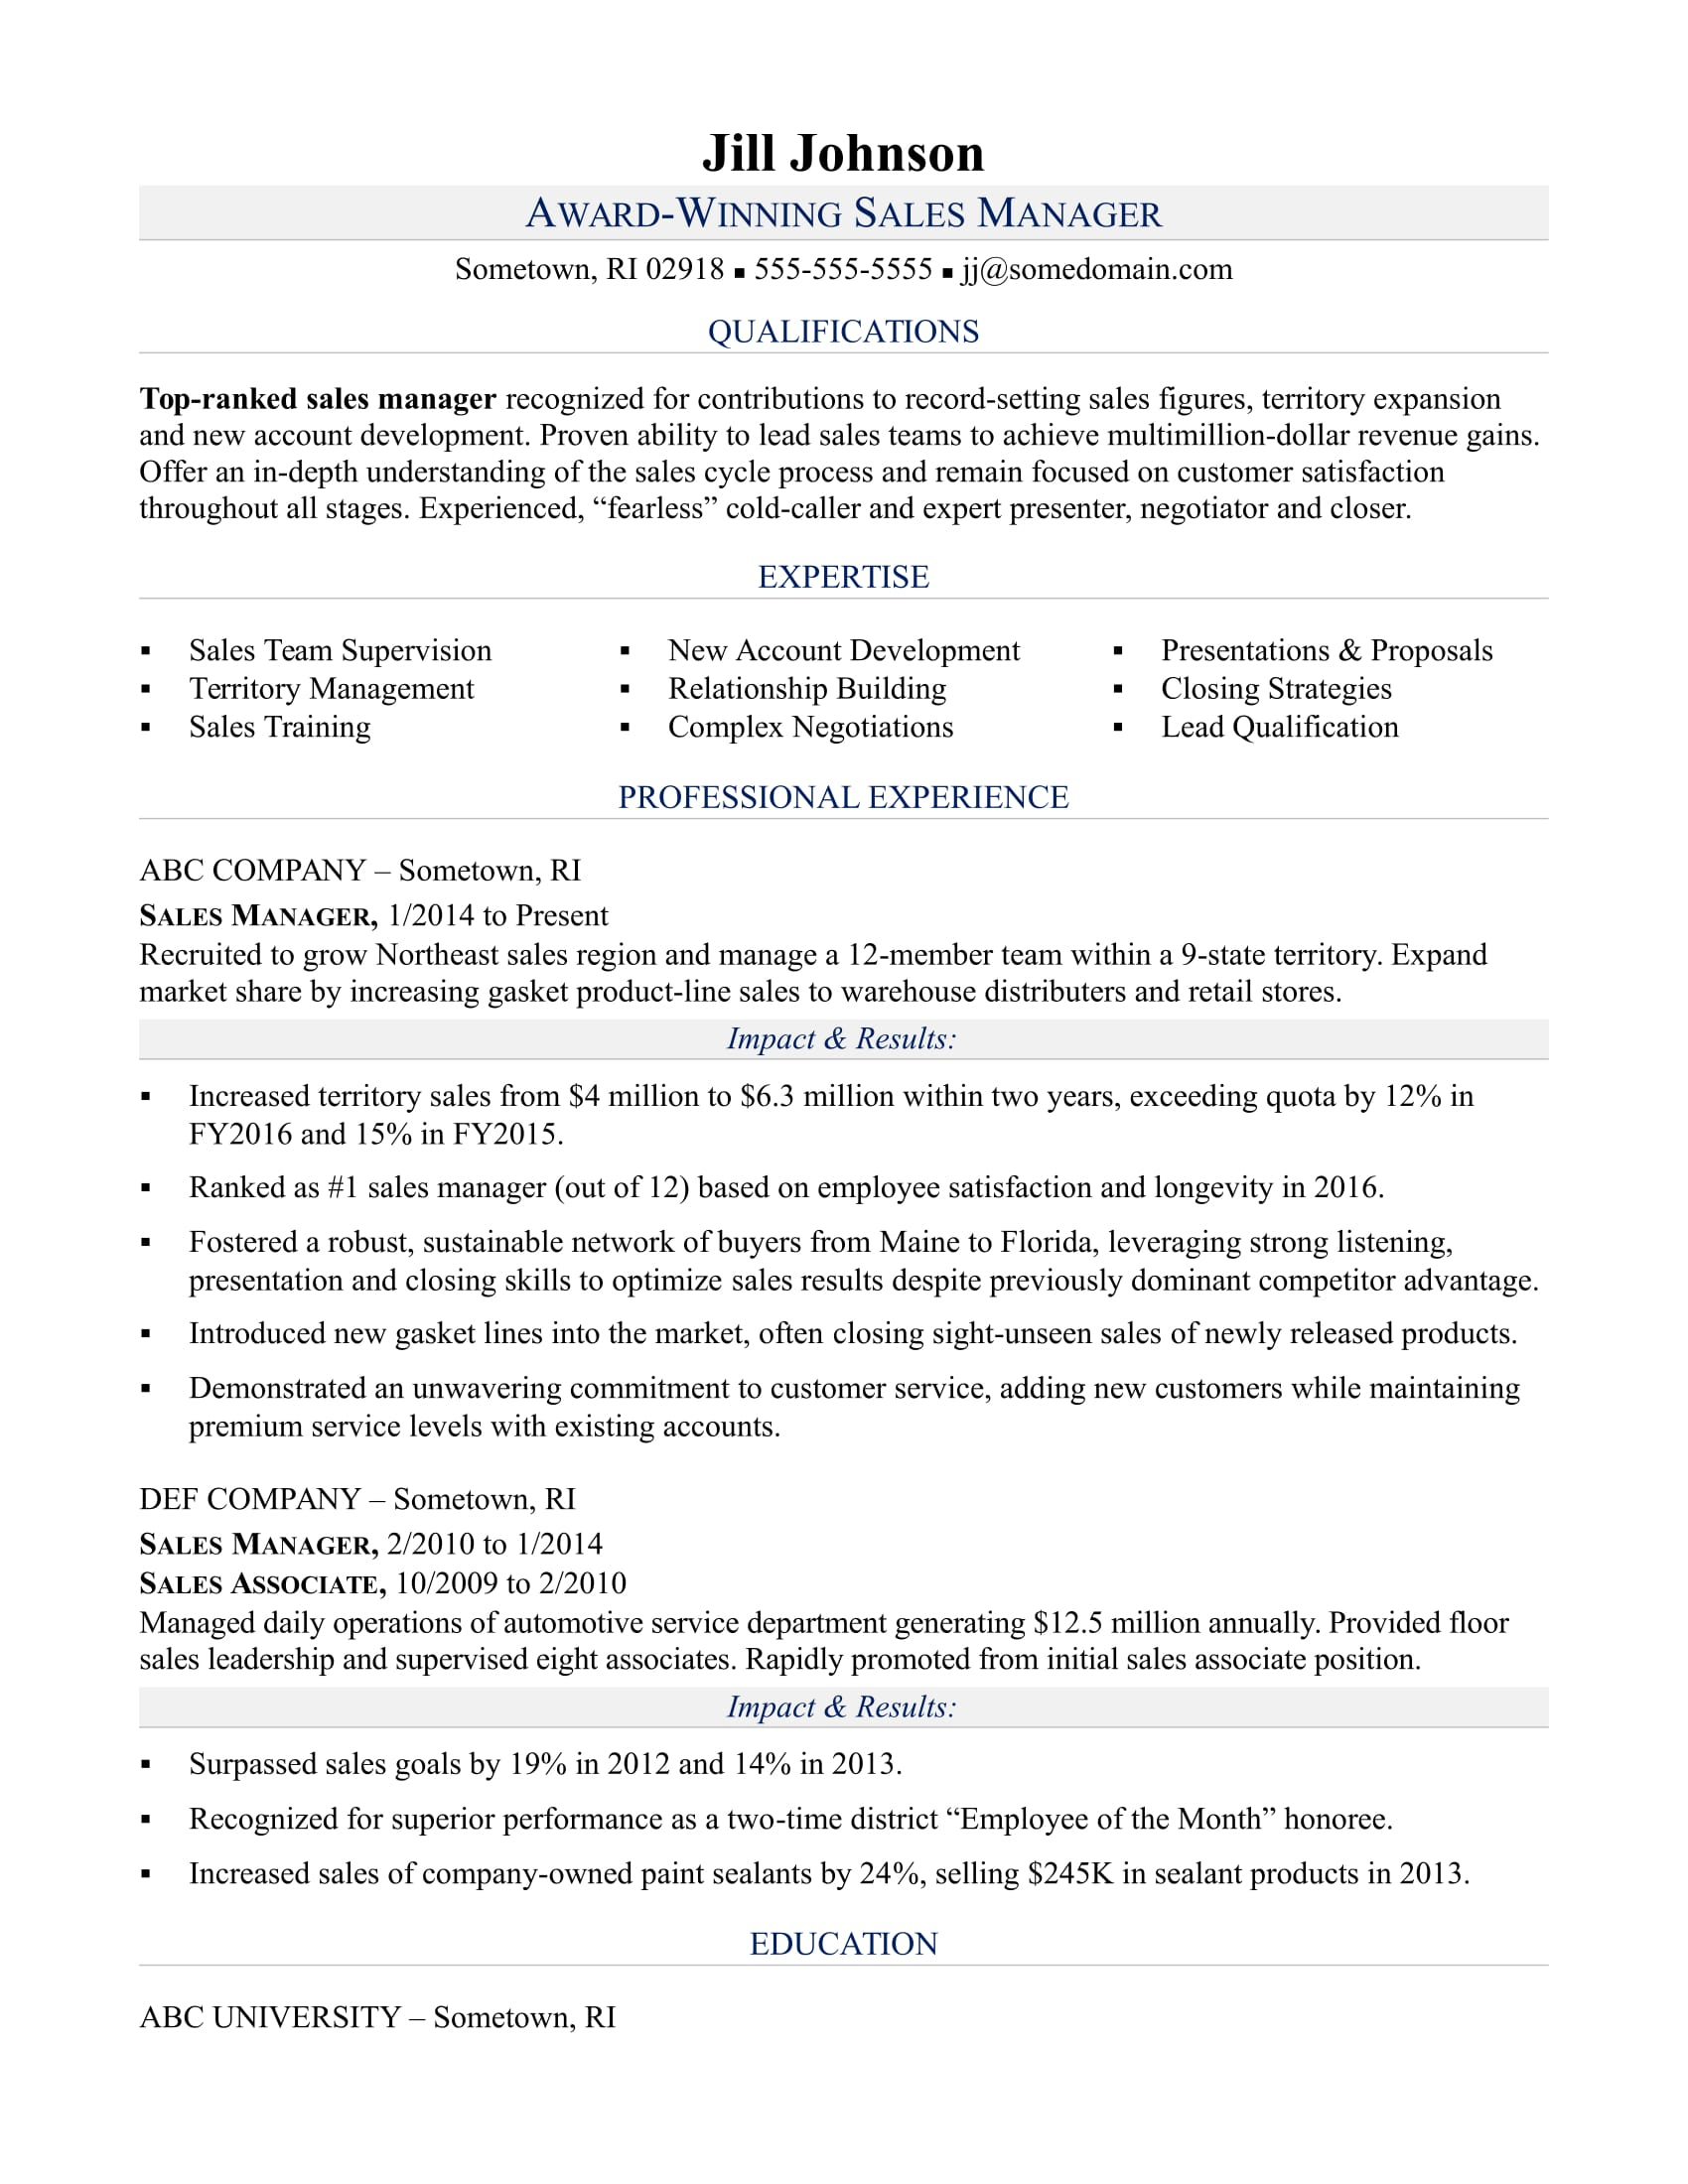 monster sample resume templates